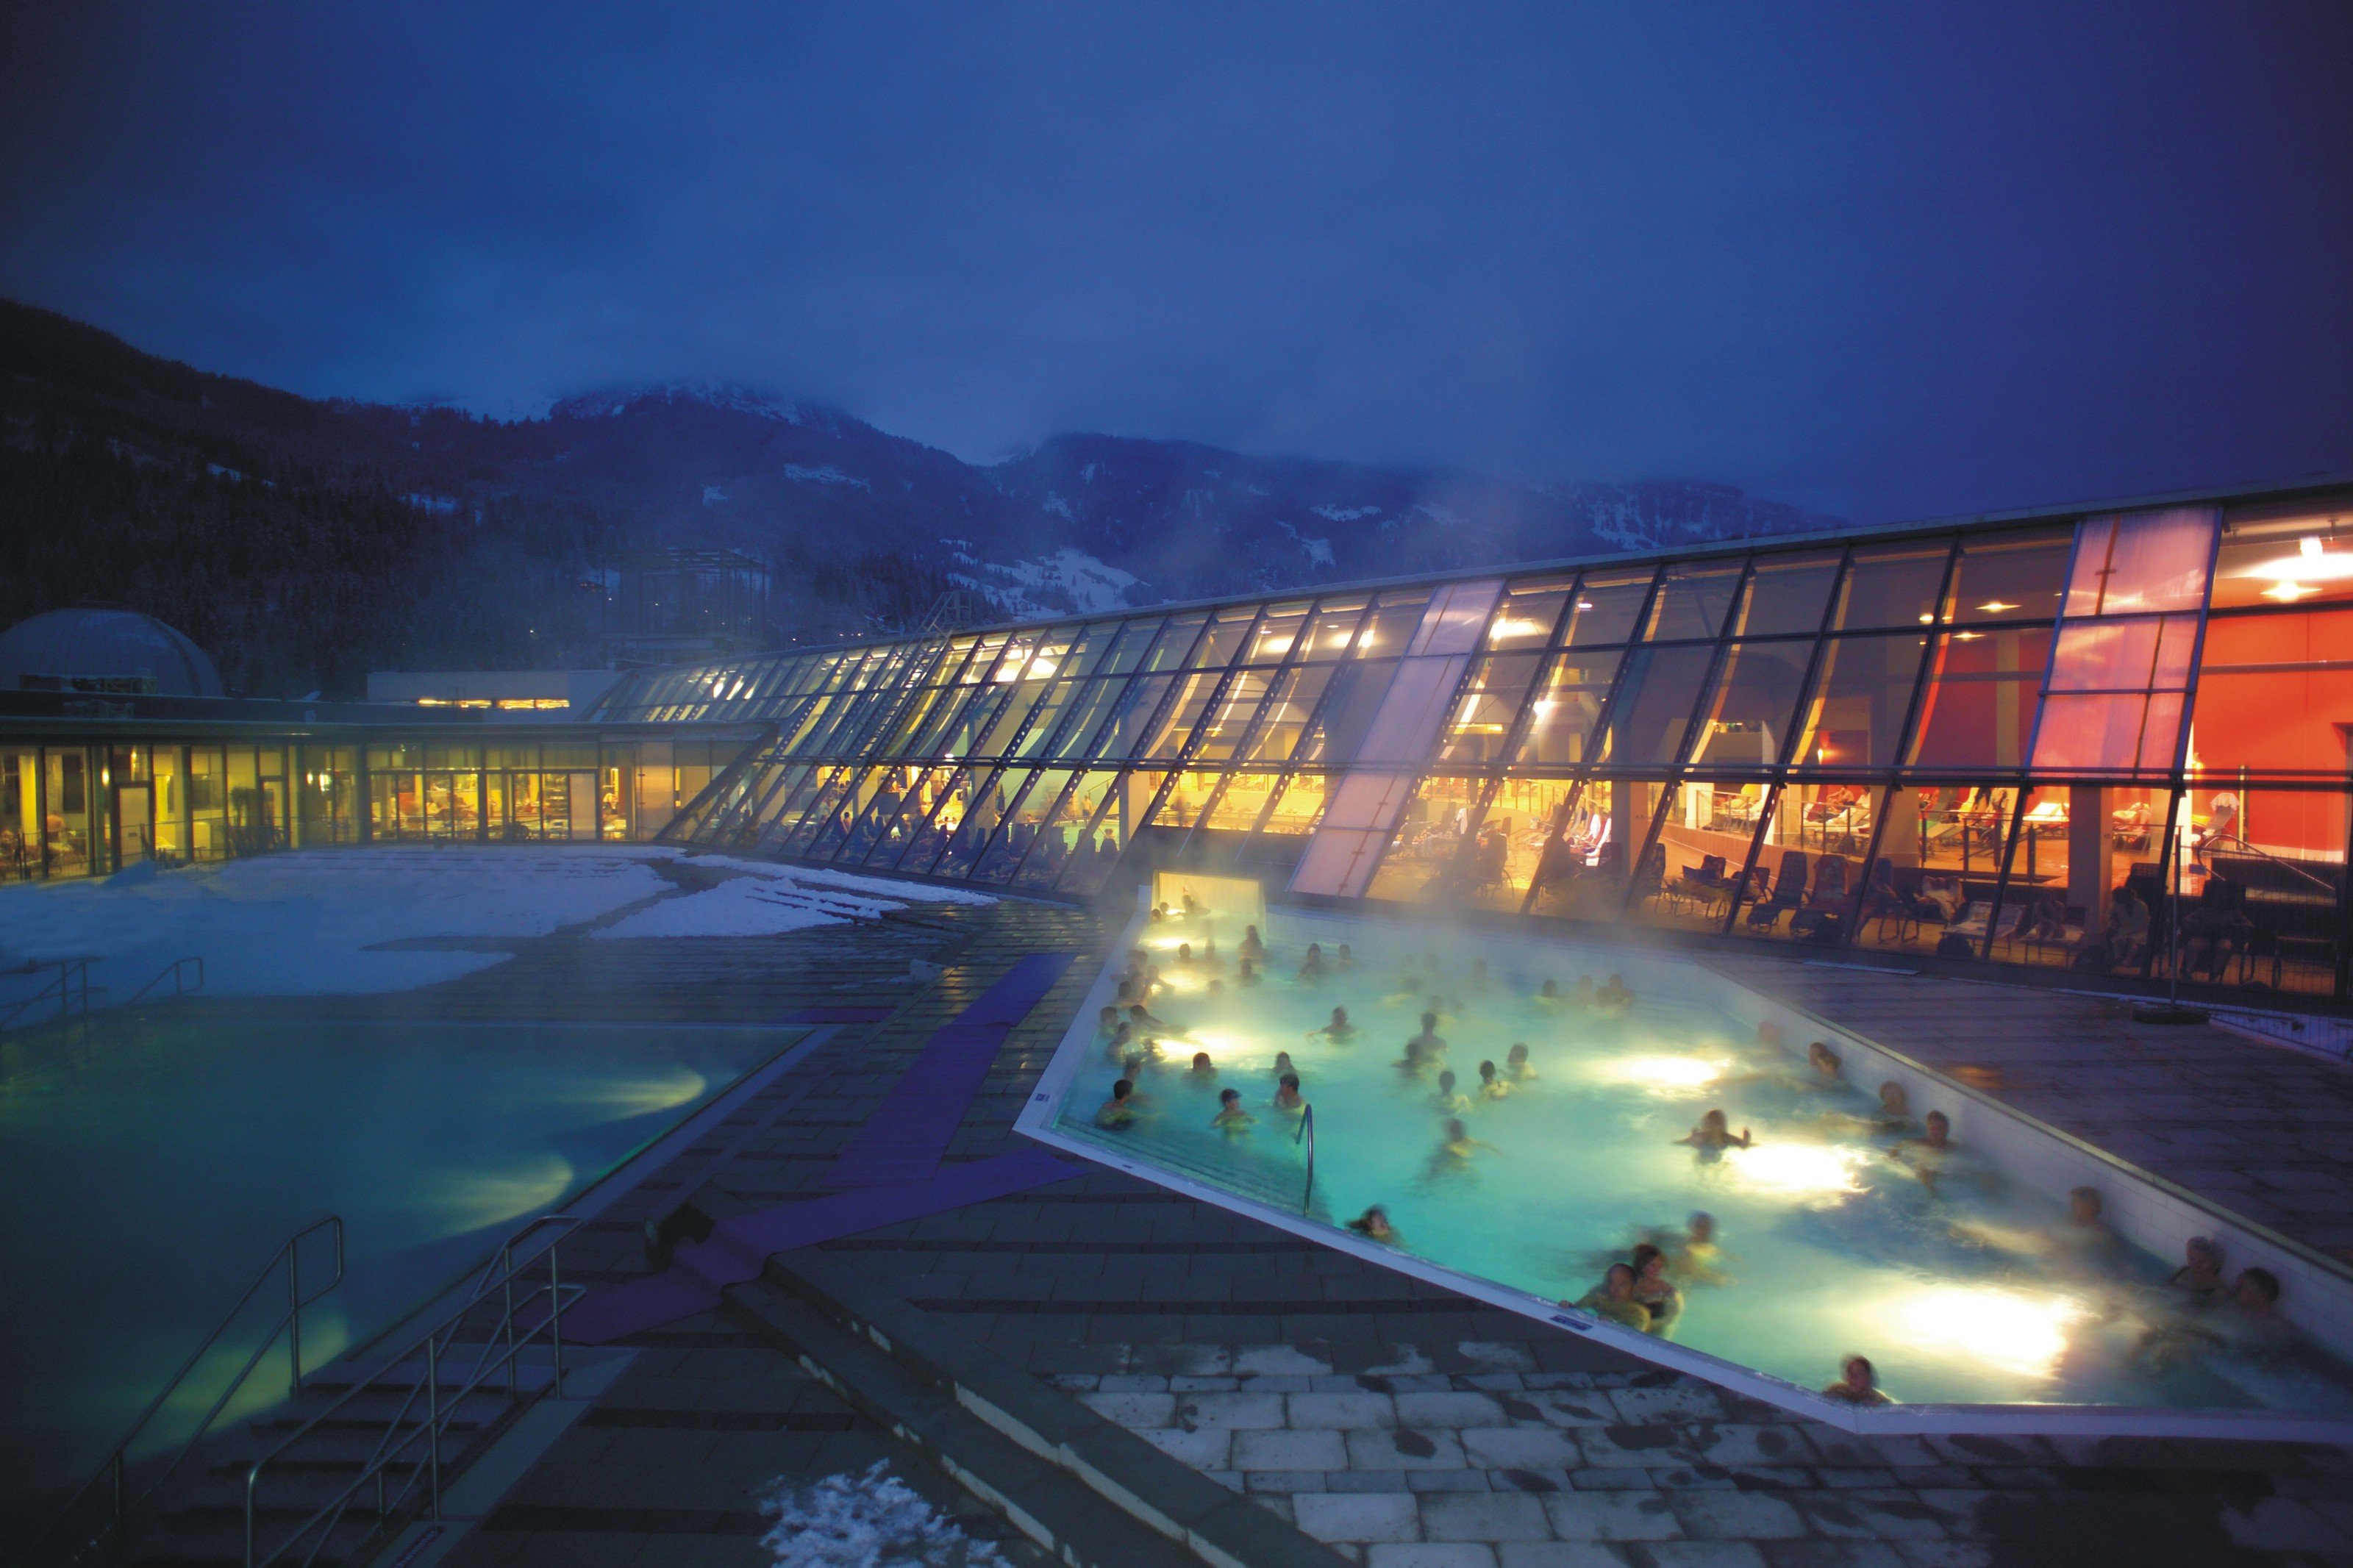 bad-gastein spa resort